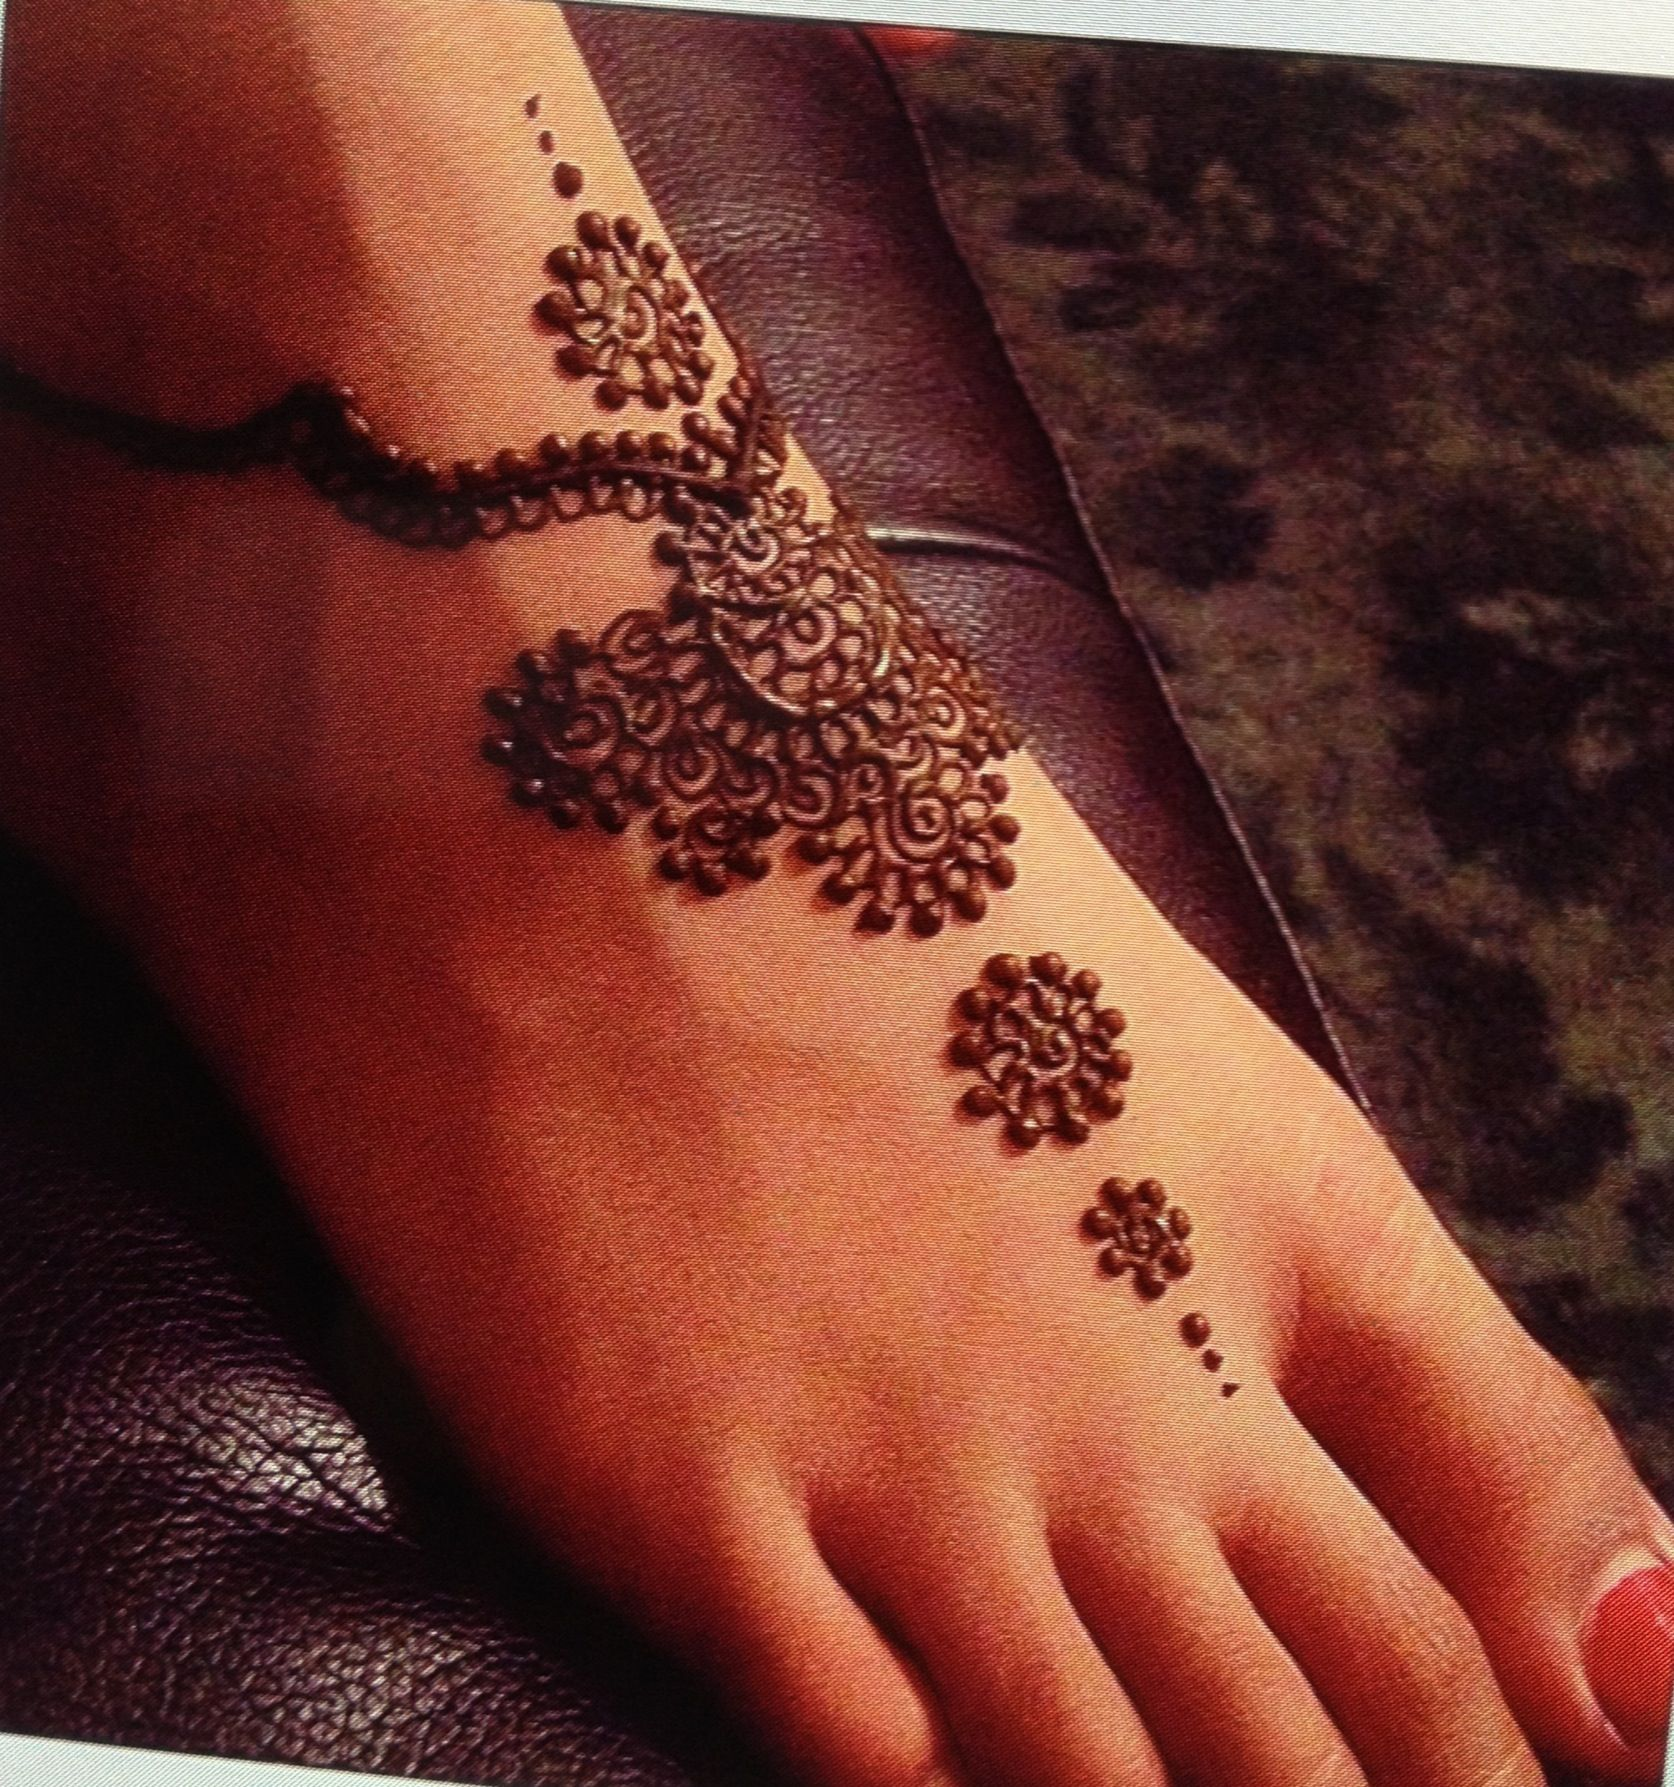 Simple Henna Foot Tattoo Designs: This One Is Perfection!! I Want This One This Summer